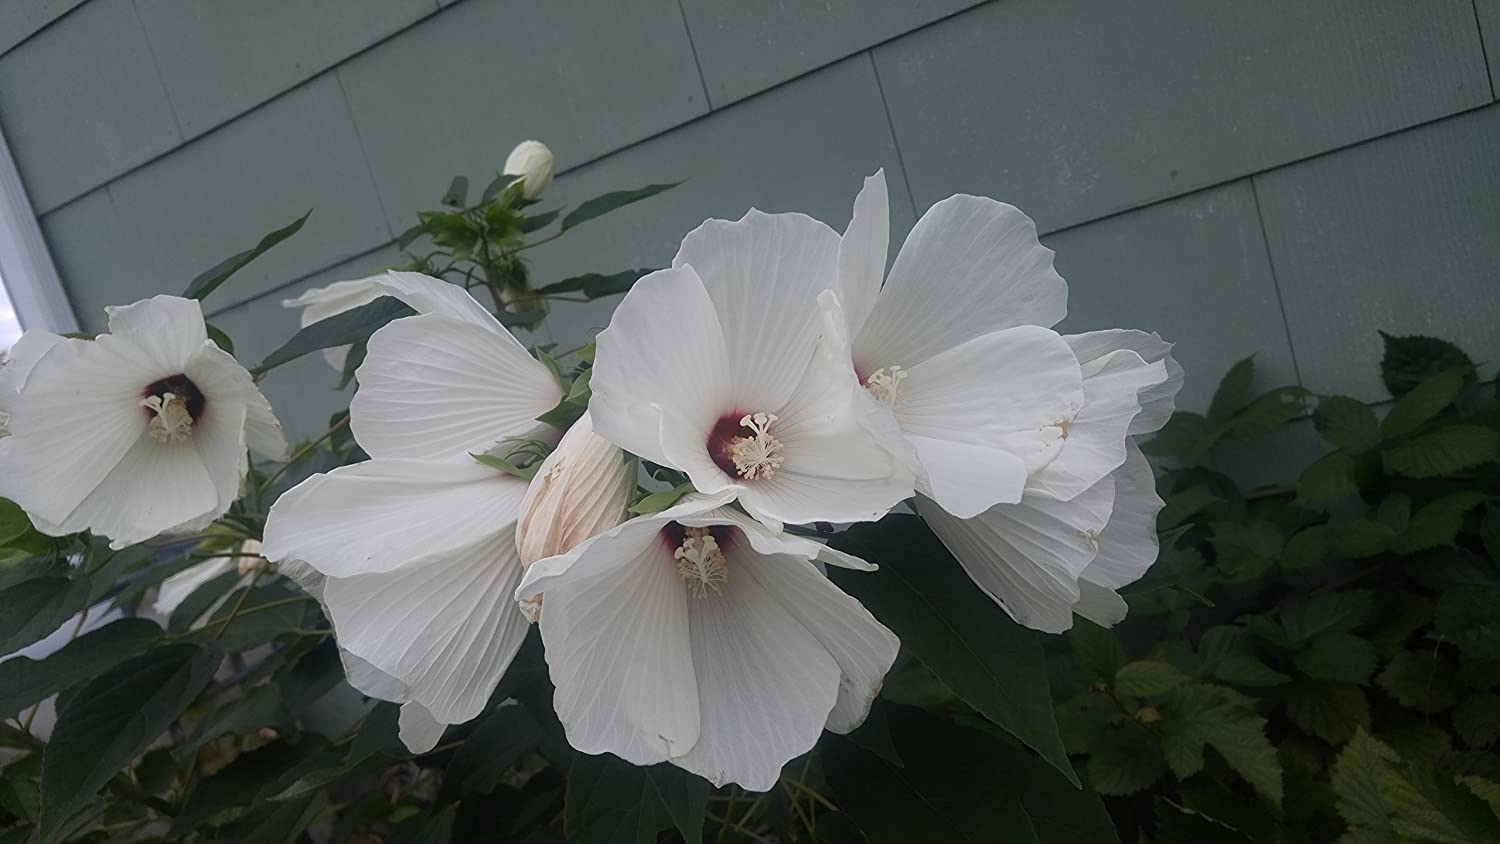 Amazon 25 luna white hardy hibiscus hibiscus moscheutos flower amazon 25 luna white hardy hibiscus hibiscus moscheutos flower seeds flowering plants garden outdoor izmirmasajfo